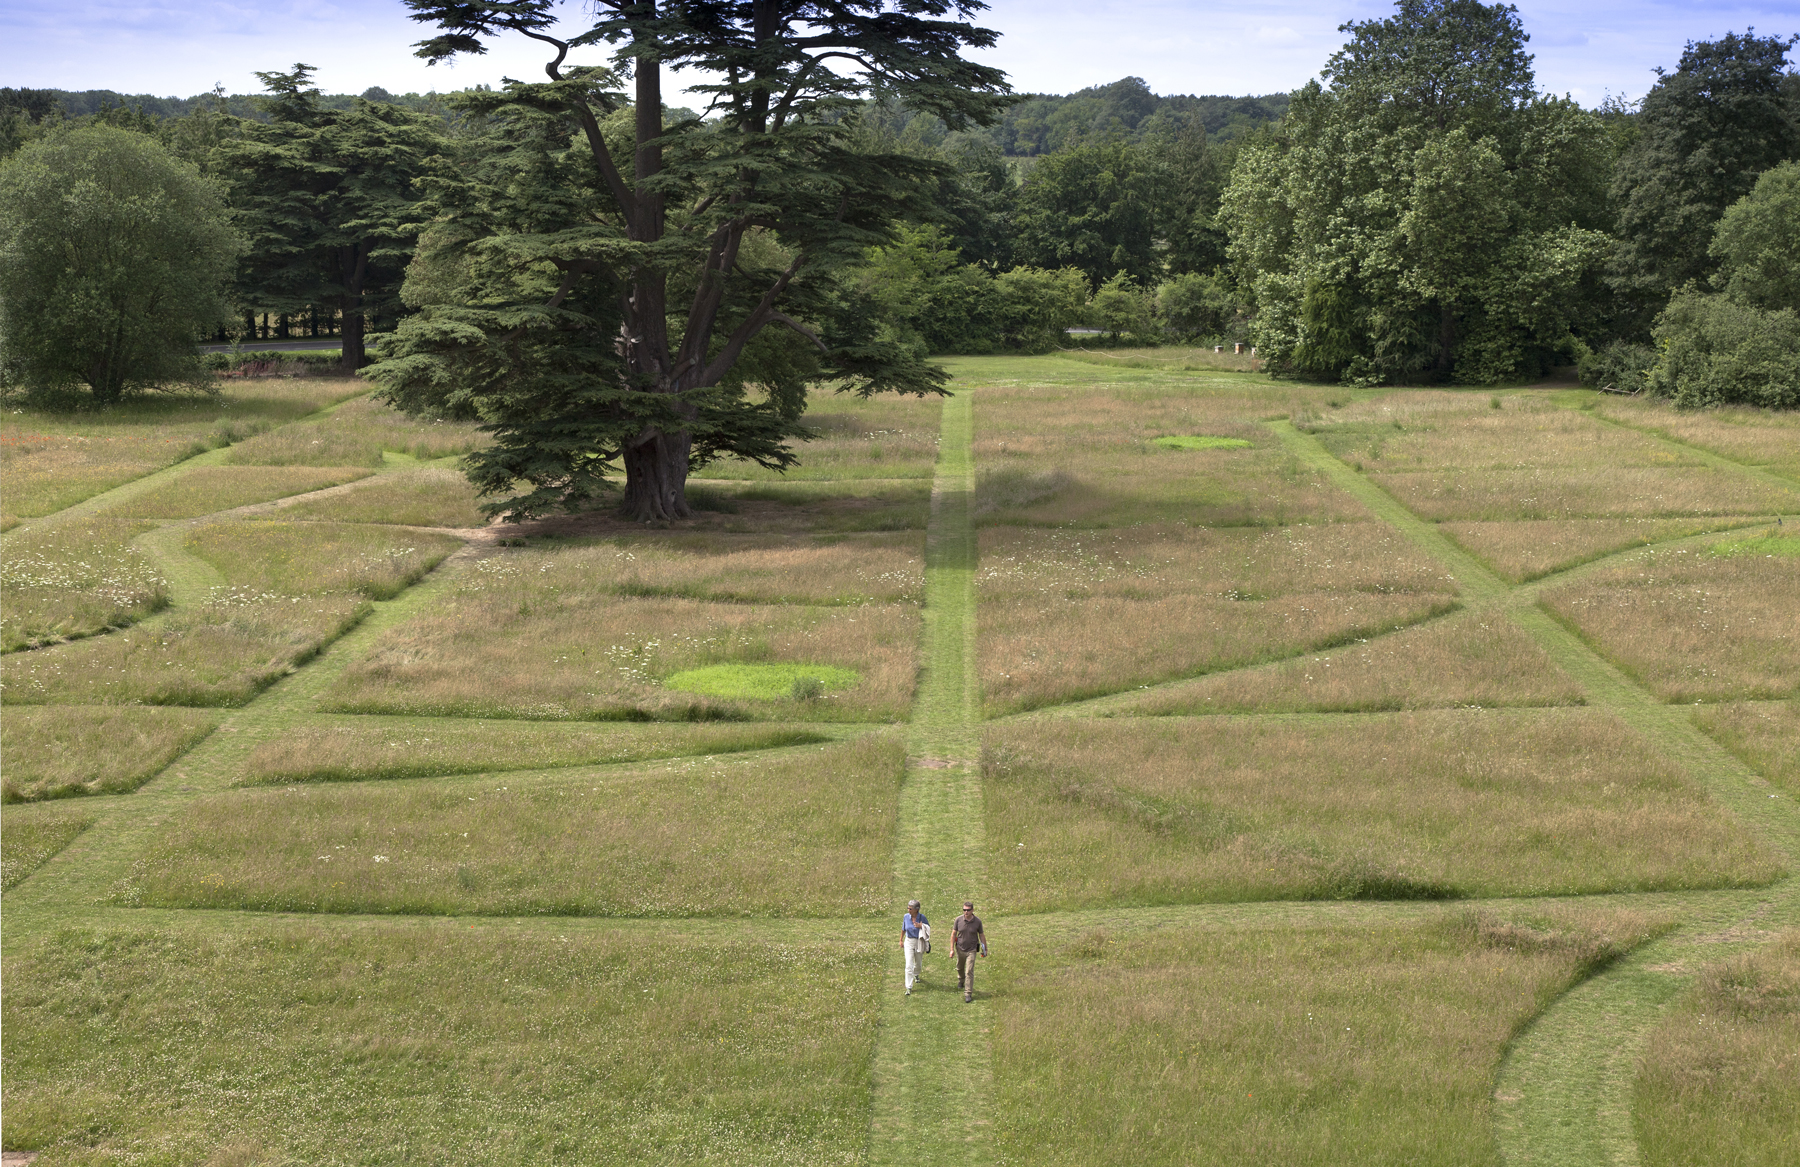 Parterre image by Jamie Woodley © Compton Verney 2015